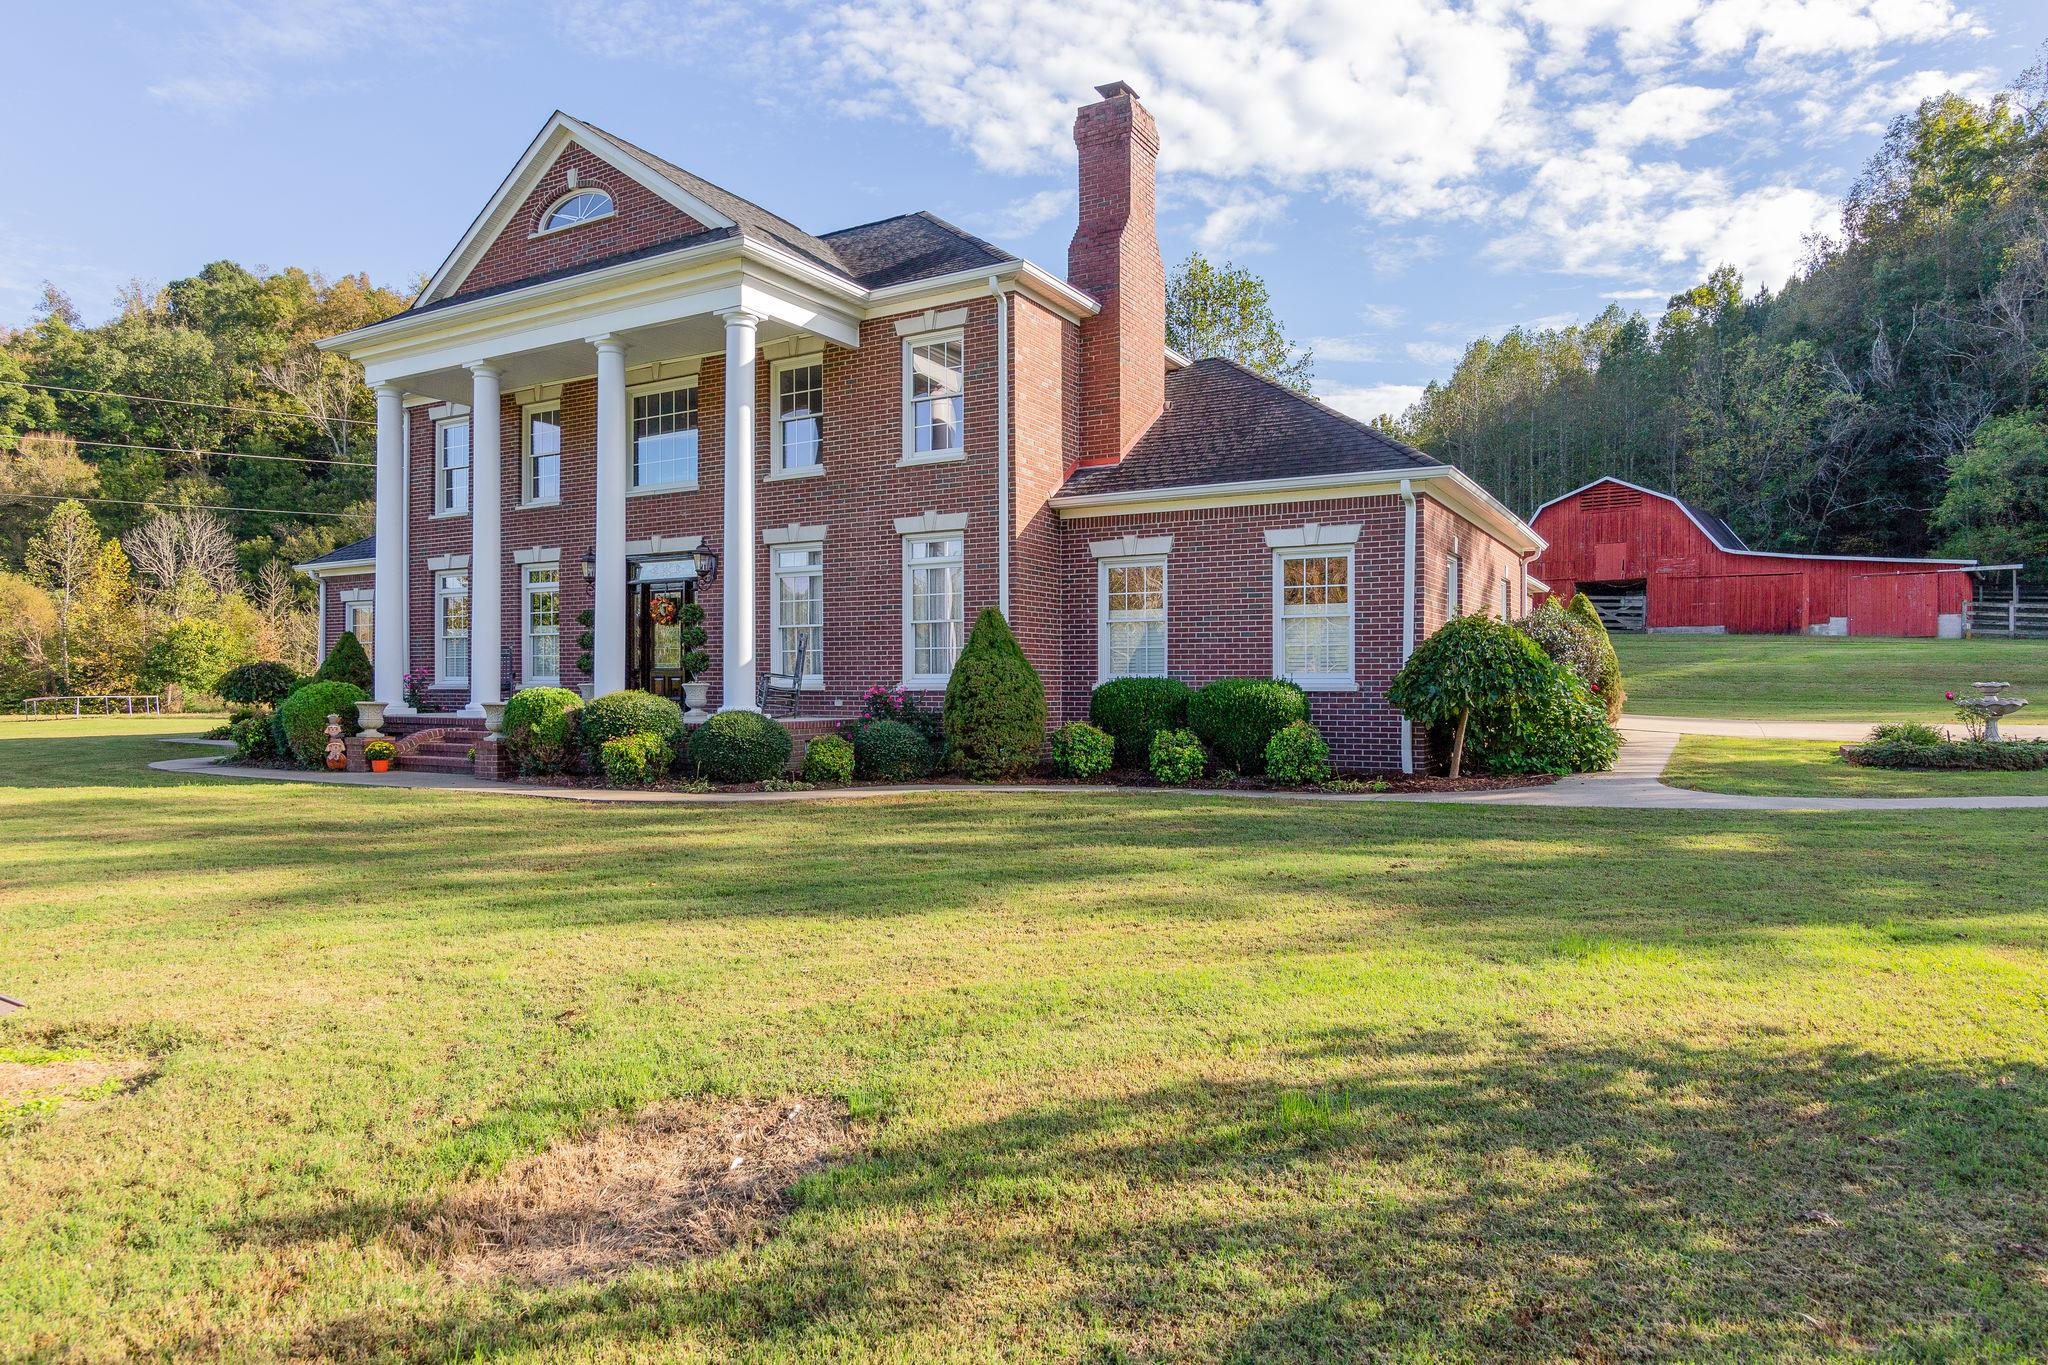 1309 Factory Creek Rd, Ethridge, TN 38456 - Ethridge, TN real estate listing